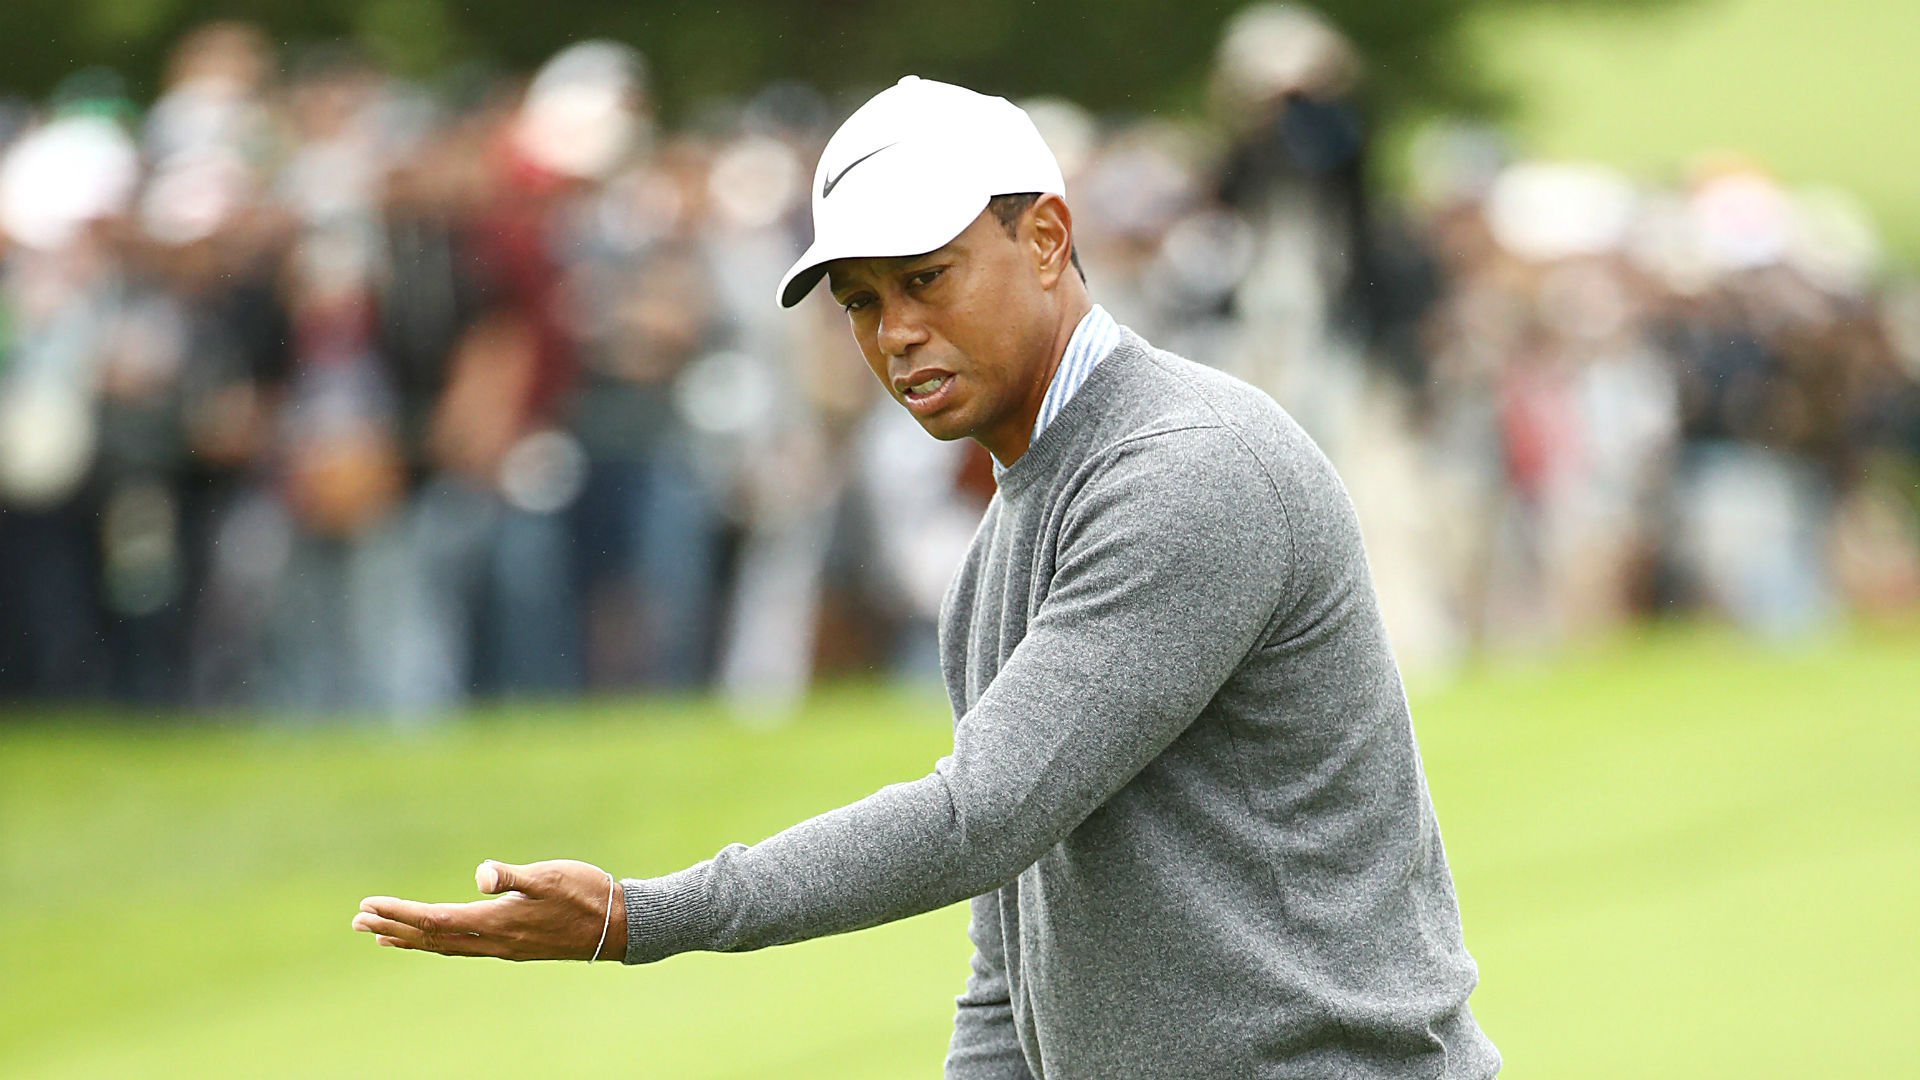 tiger woods u0026 39  score  round 3 results  highlights from 2019